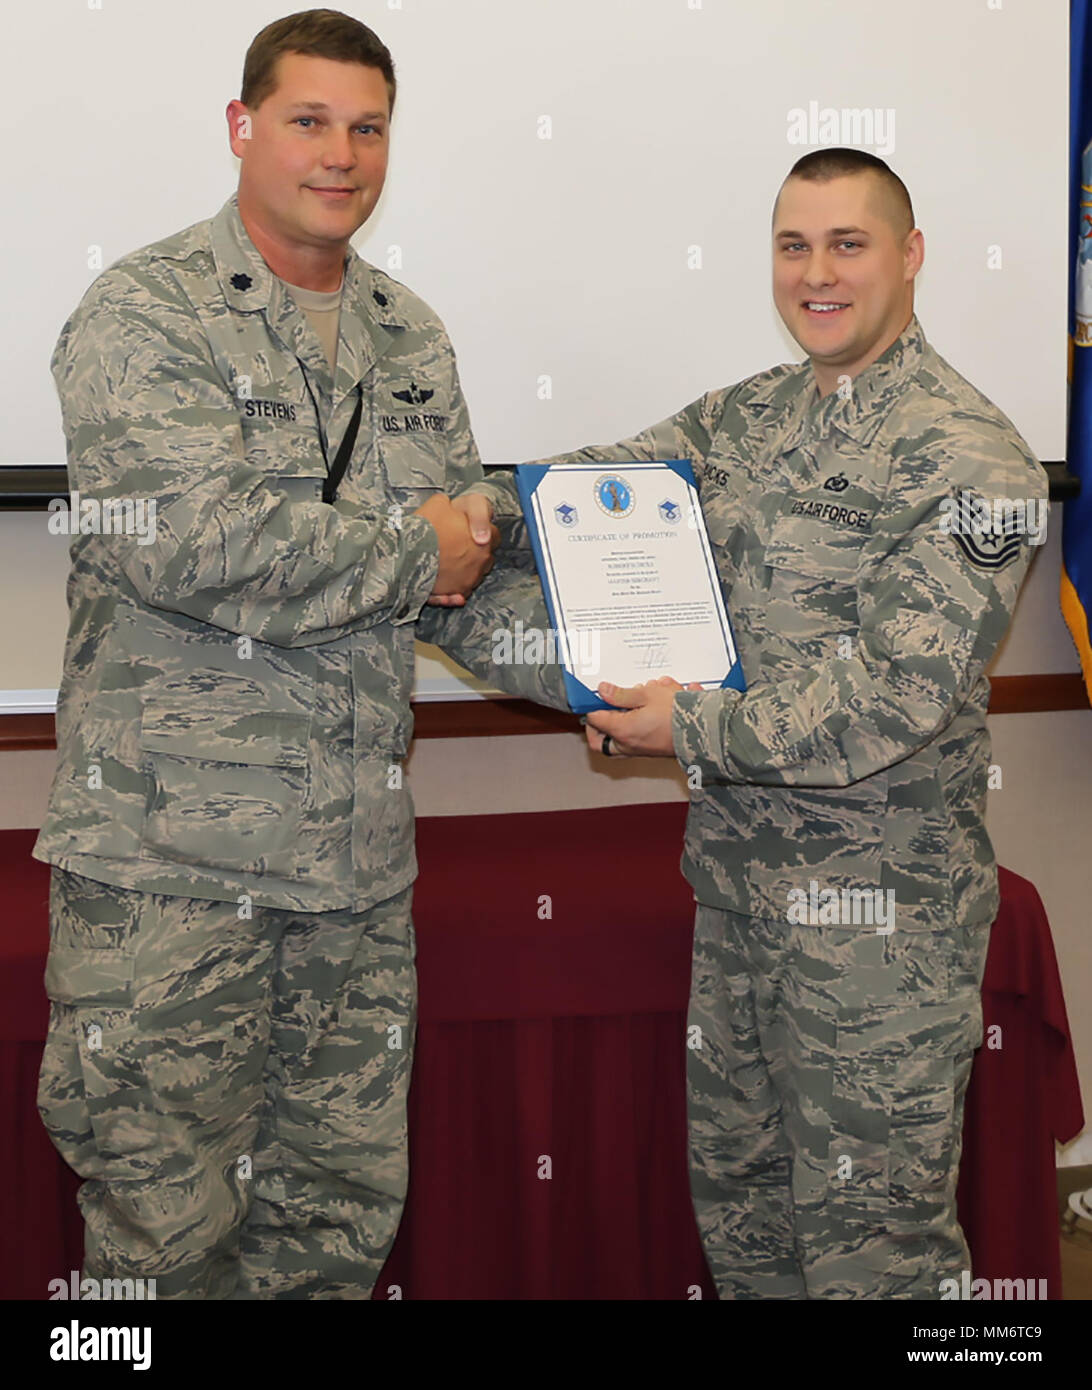 New York Air National Guard Master Sgt. Robert Dicks, right, was promoted on Sept. 13. Lt. Col. Joseph Stevens, an assistant flight commander with the 224th Air Defense Squadron, served as the promotion officer and is pictured handing Master Sgt. Dicks his promotion certificate. New York Air National Guard promotions recognize an individual's capability for additional responsibility and leadership. - Stock Image